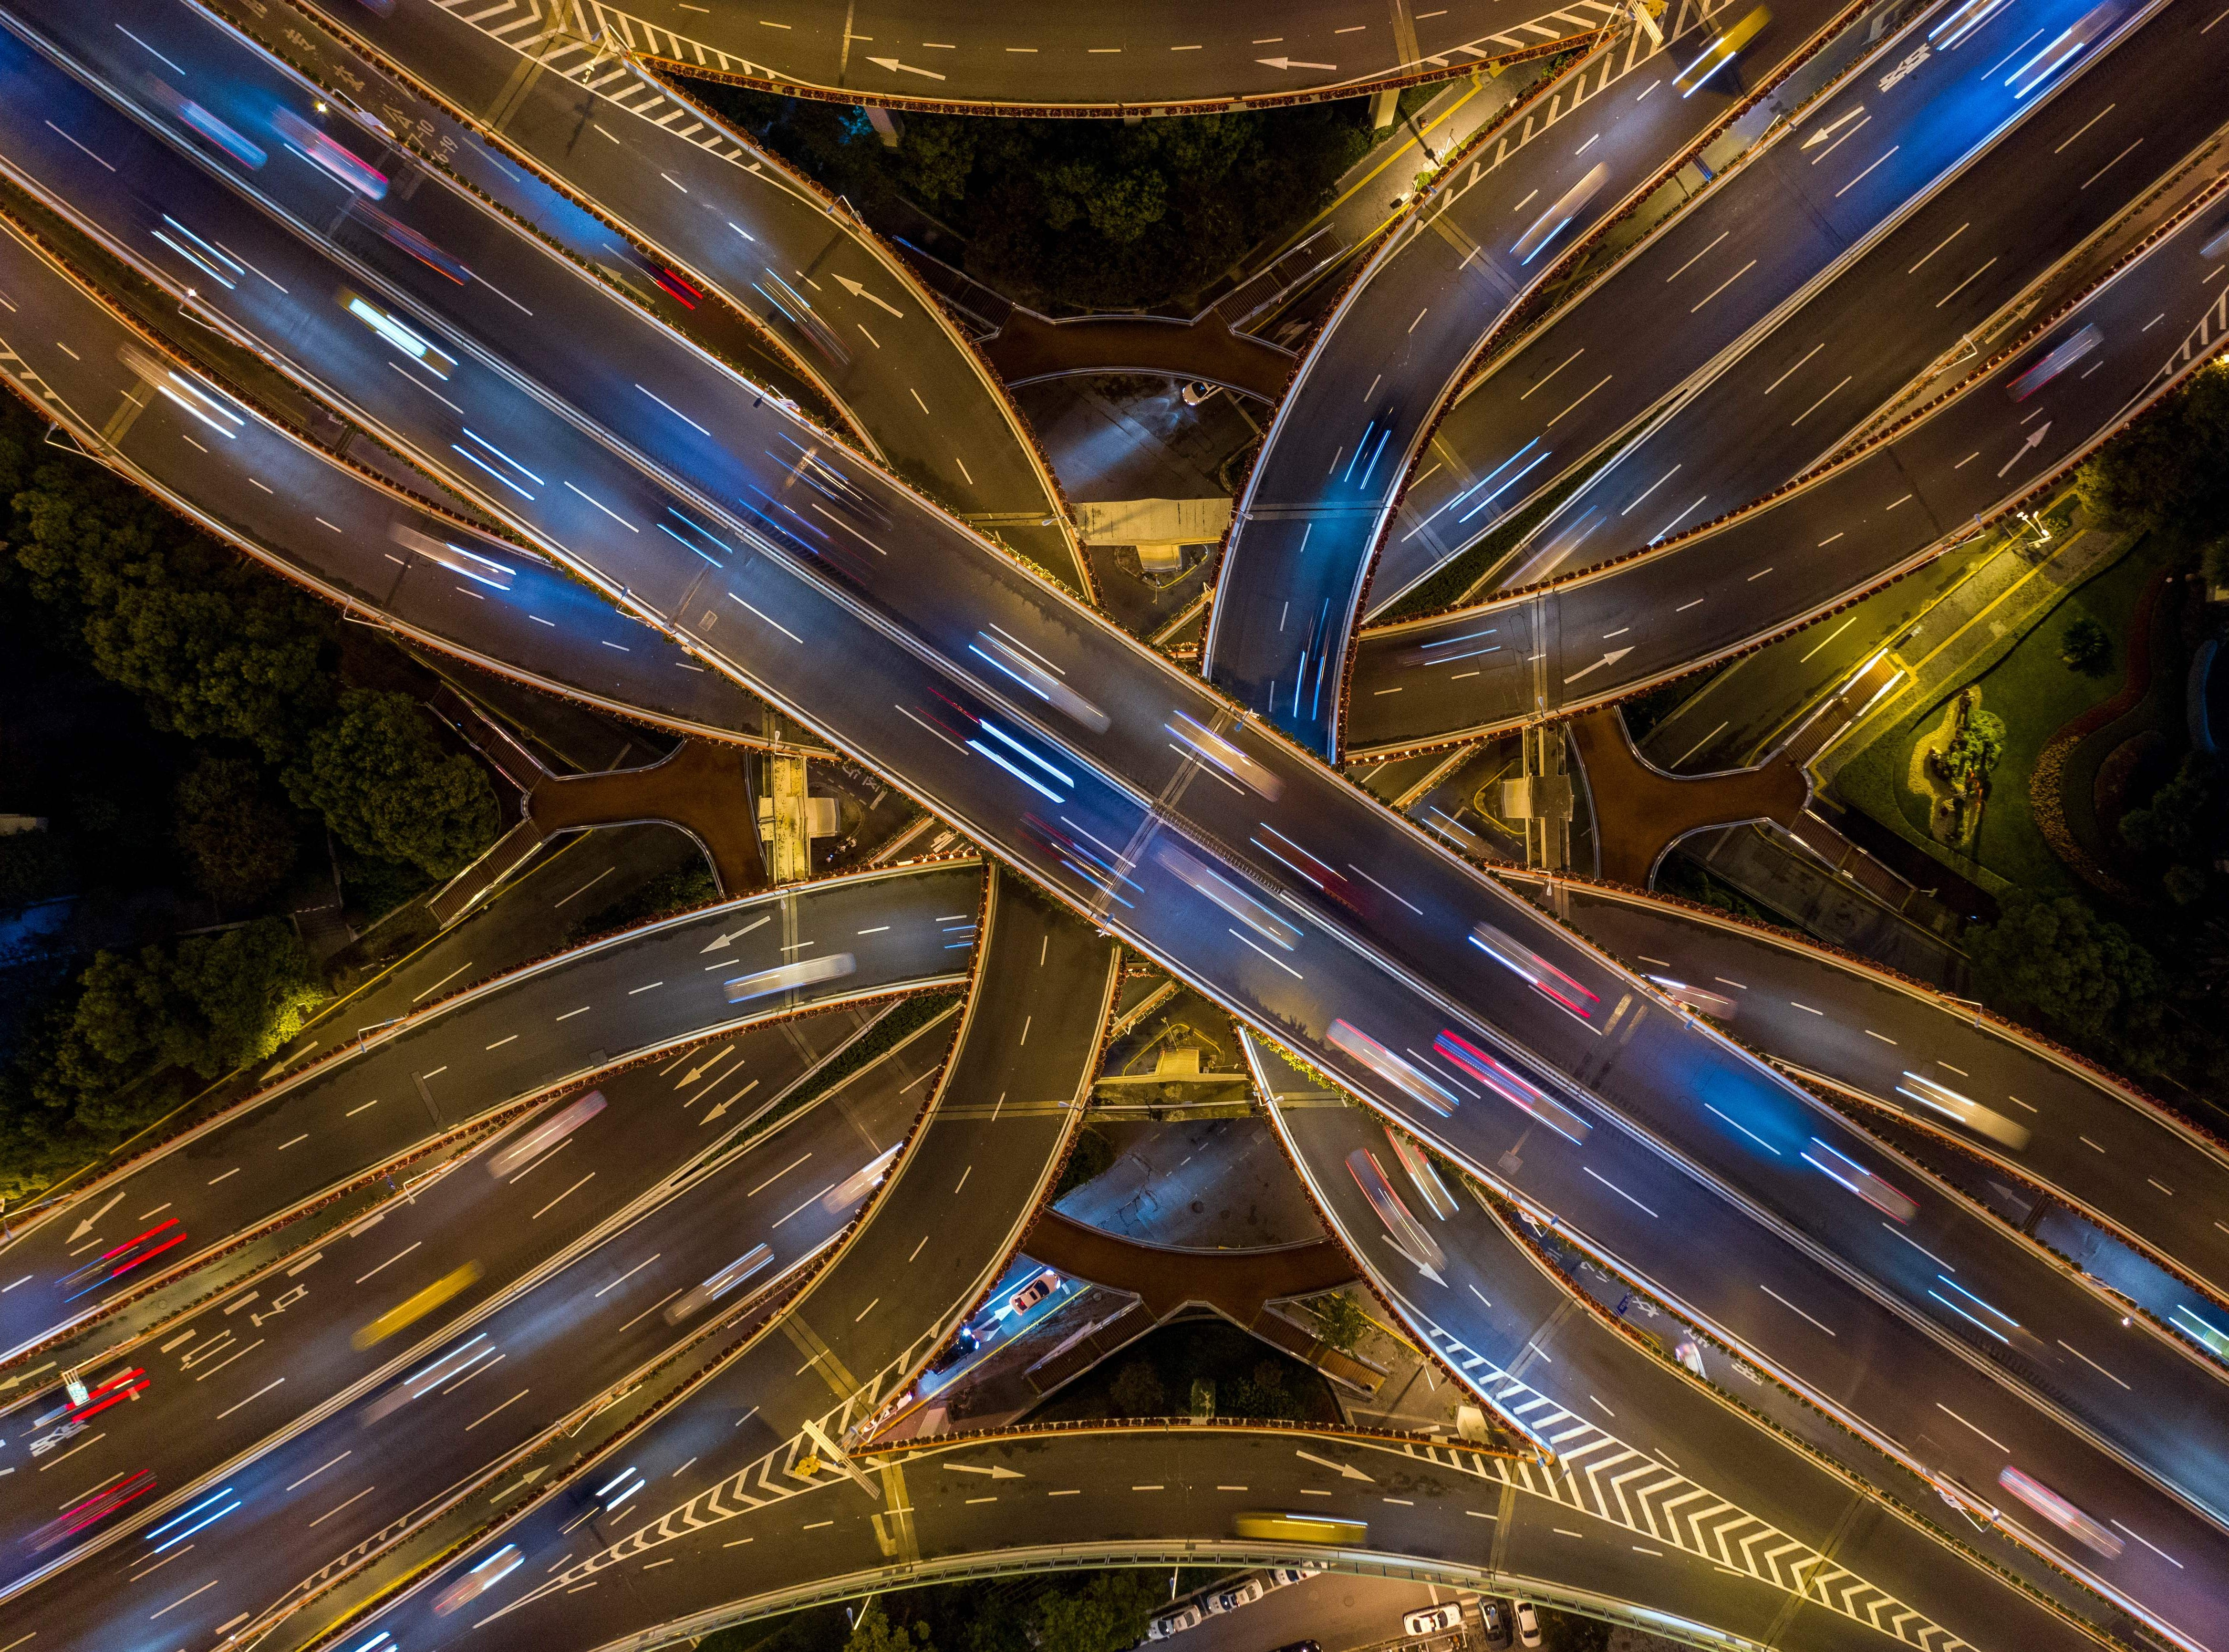 This aerial picture taken on the night of November 12, 2018 shows traffic on an elevated intersection in downtown Shanghai.